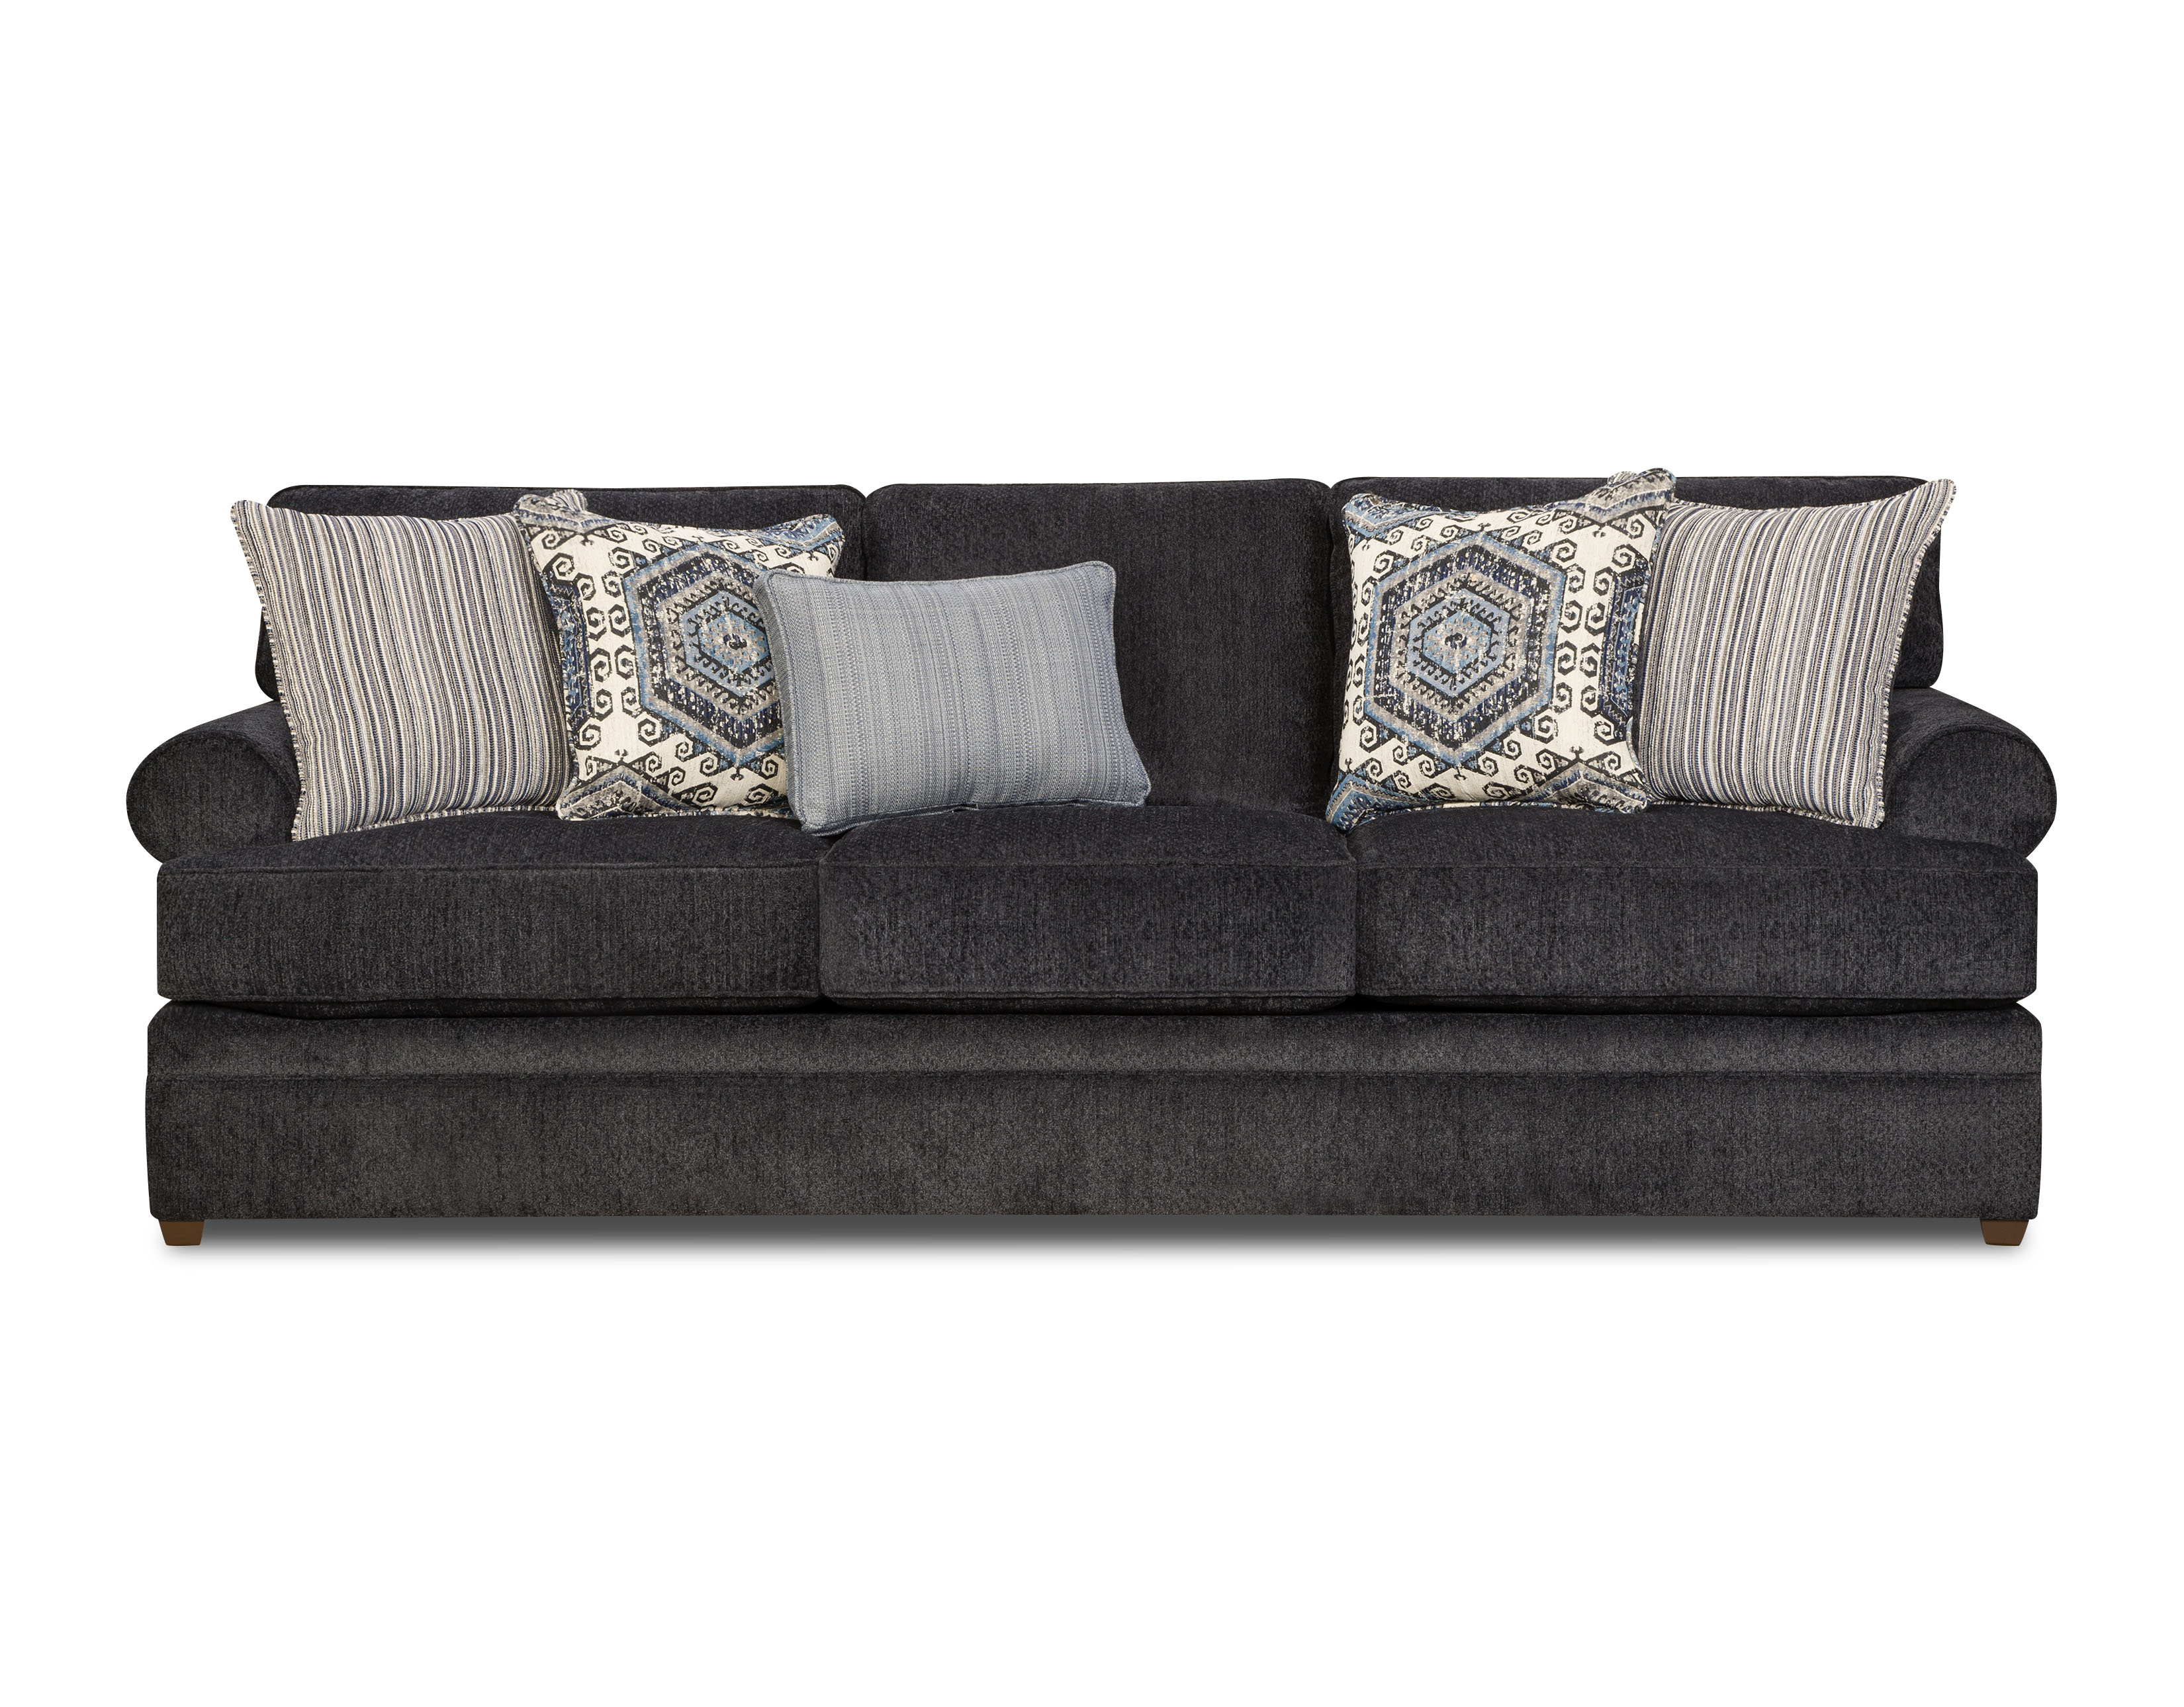 simmons beautyrest reclining sofa dunfermline vs albion rovers sofascore scarlet slate shop your way online